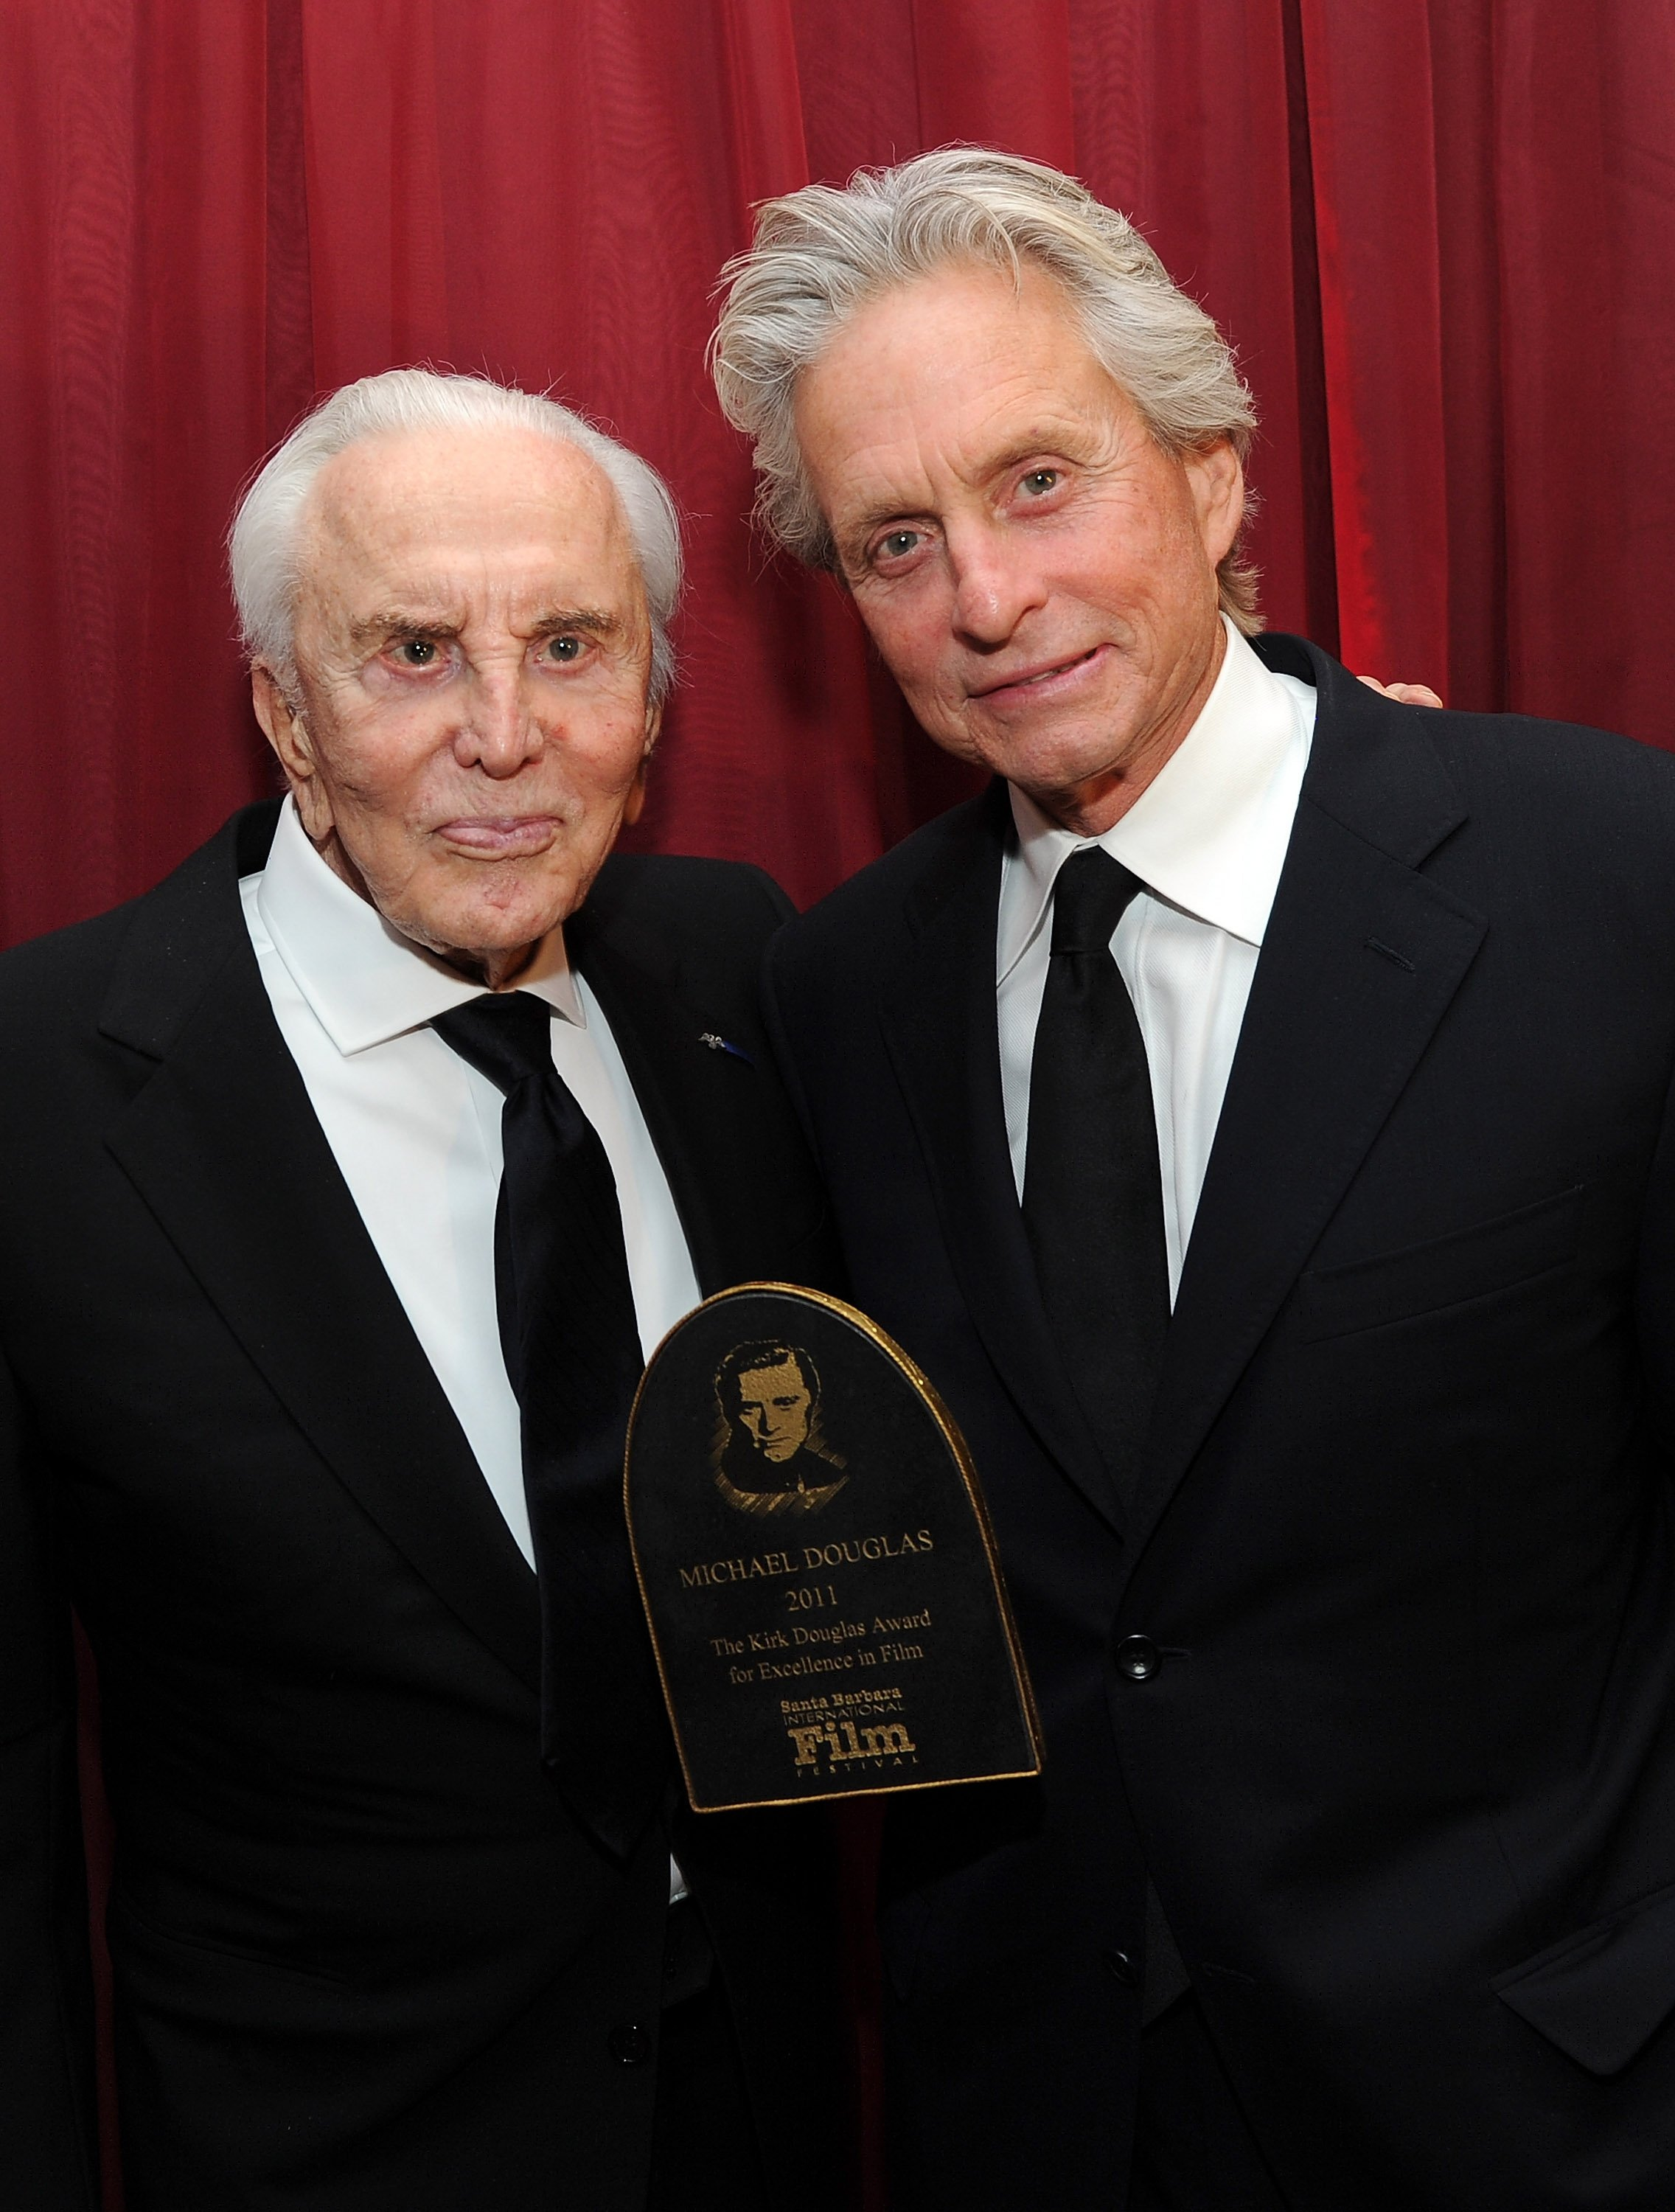 Kirk Douglas and Michael Douglas attend SBIFF's 2011 Kirk Douglas Award for Excellence In Film honoring Michael Douglas at the Biltmore Four Seasons on October 13, 2011 | Photo: GettyImages